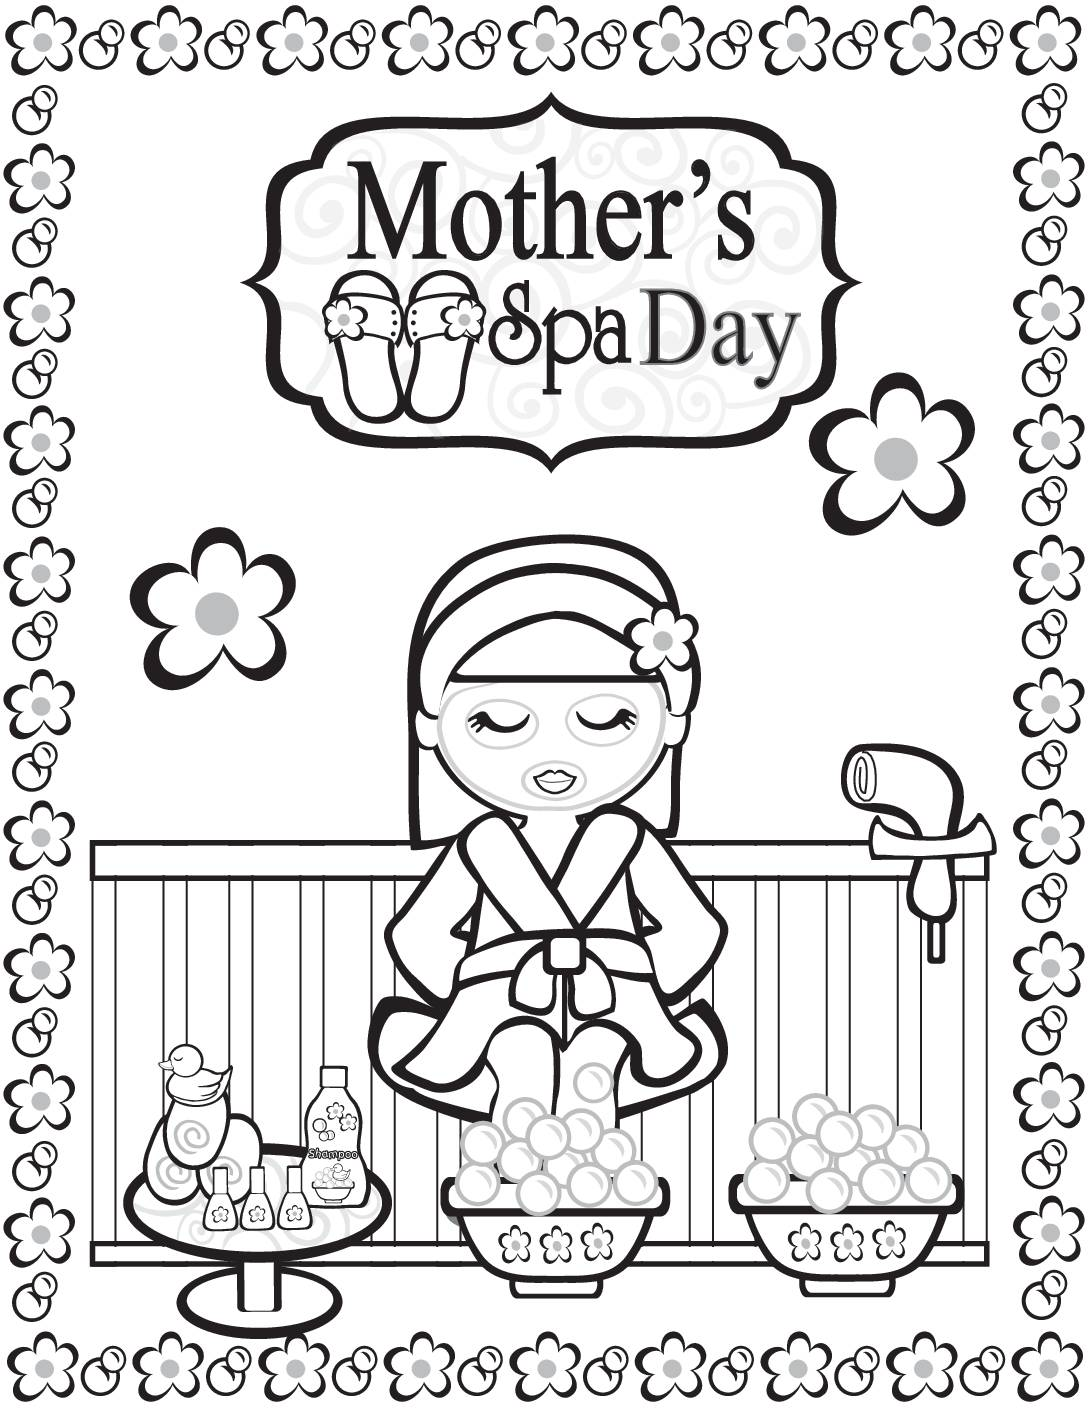 Coloring Page 2 Moms Spa Day